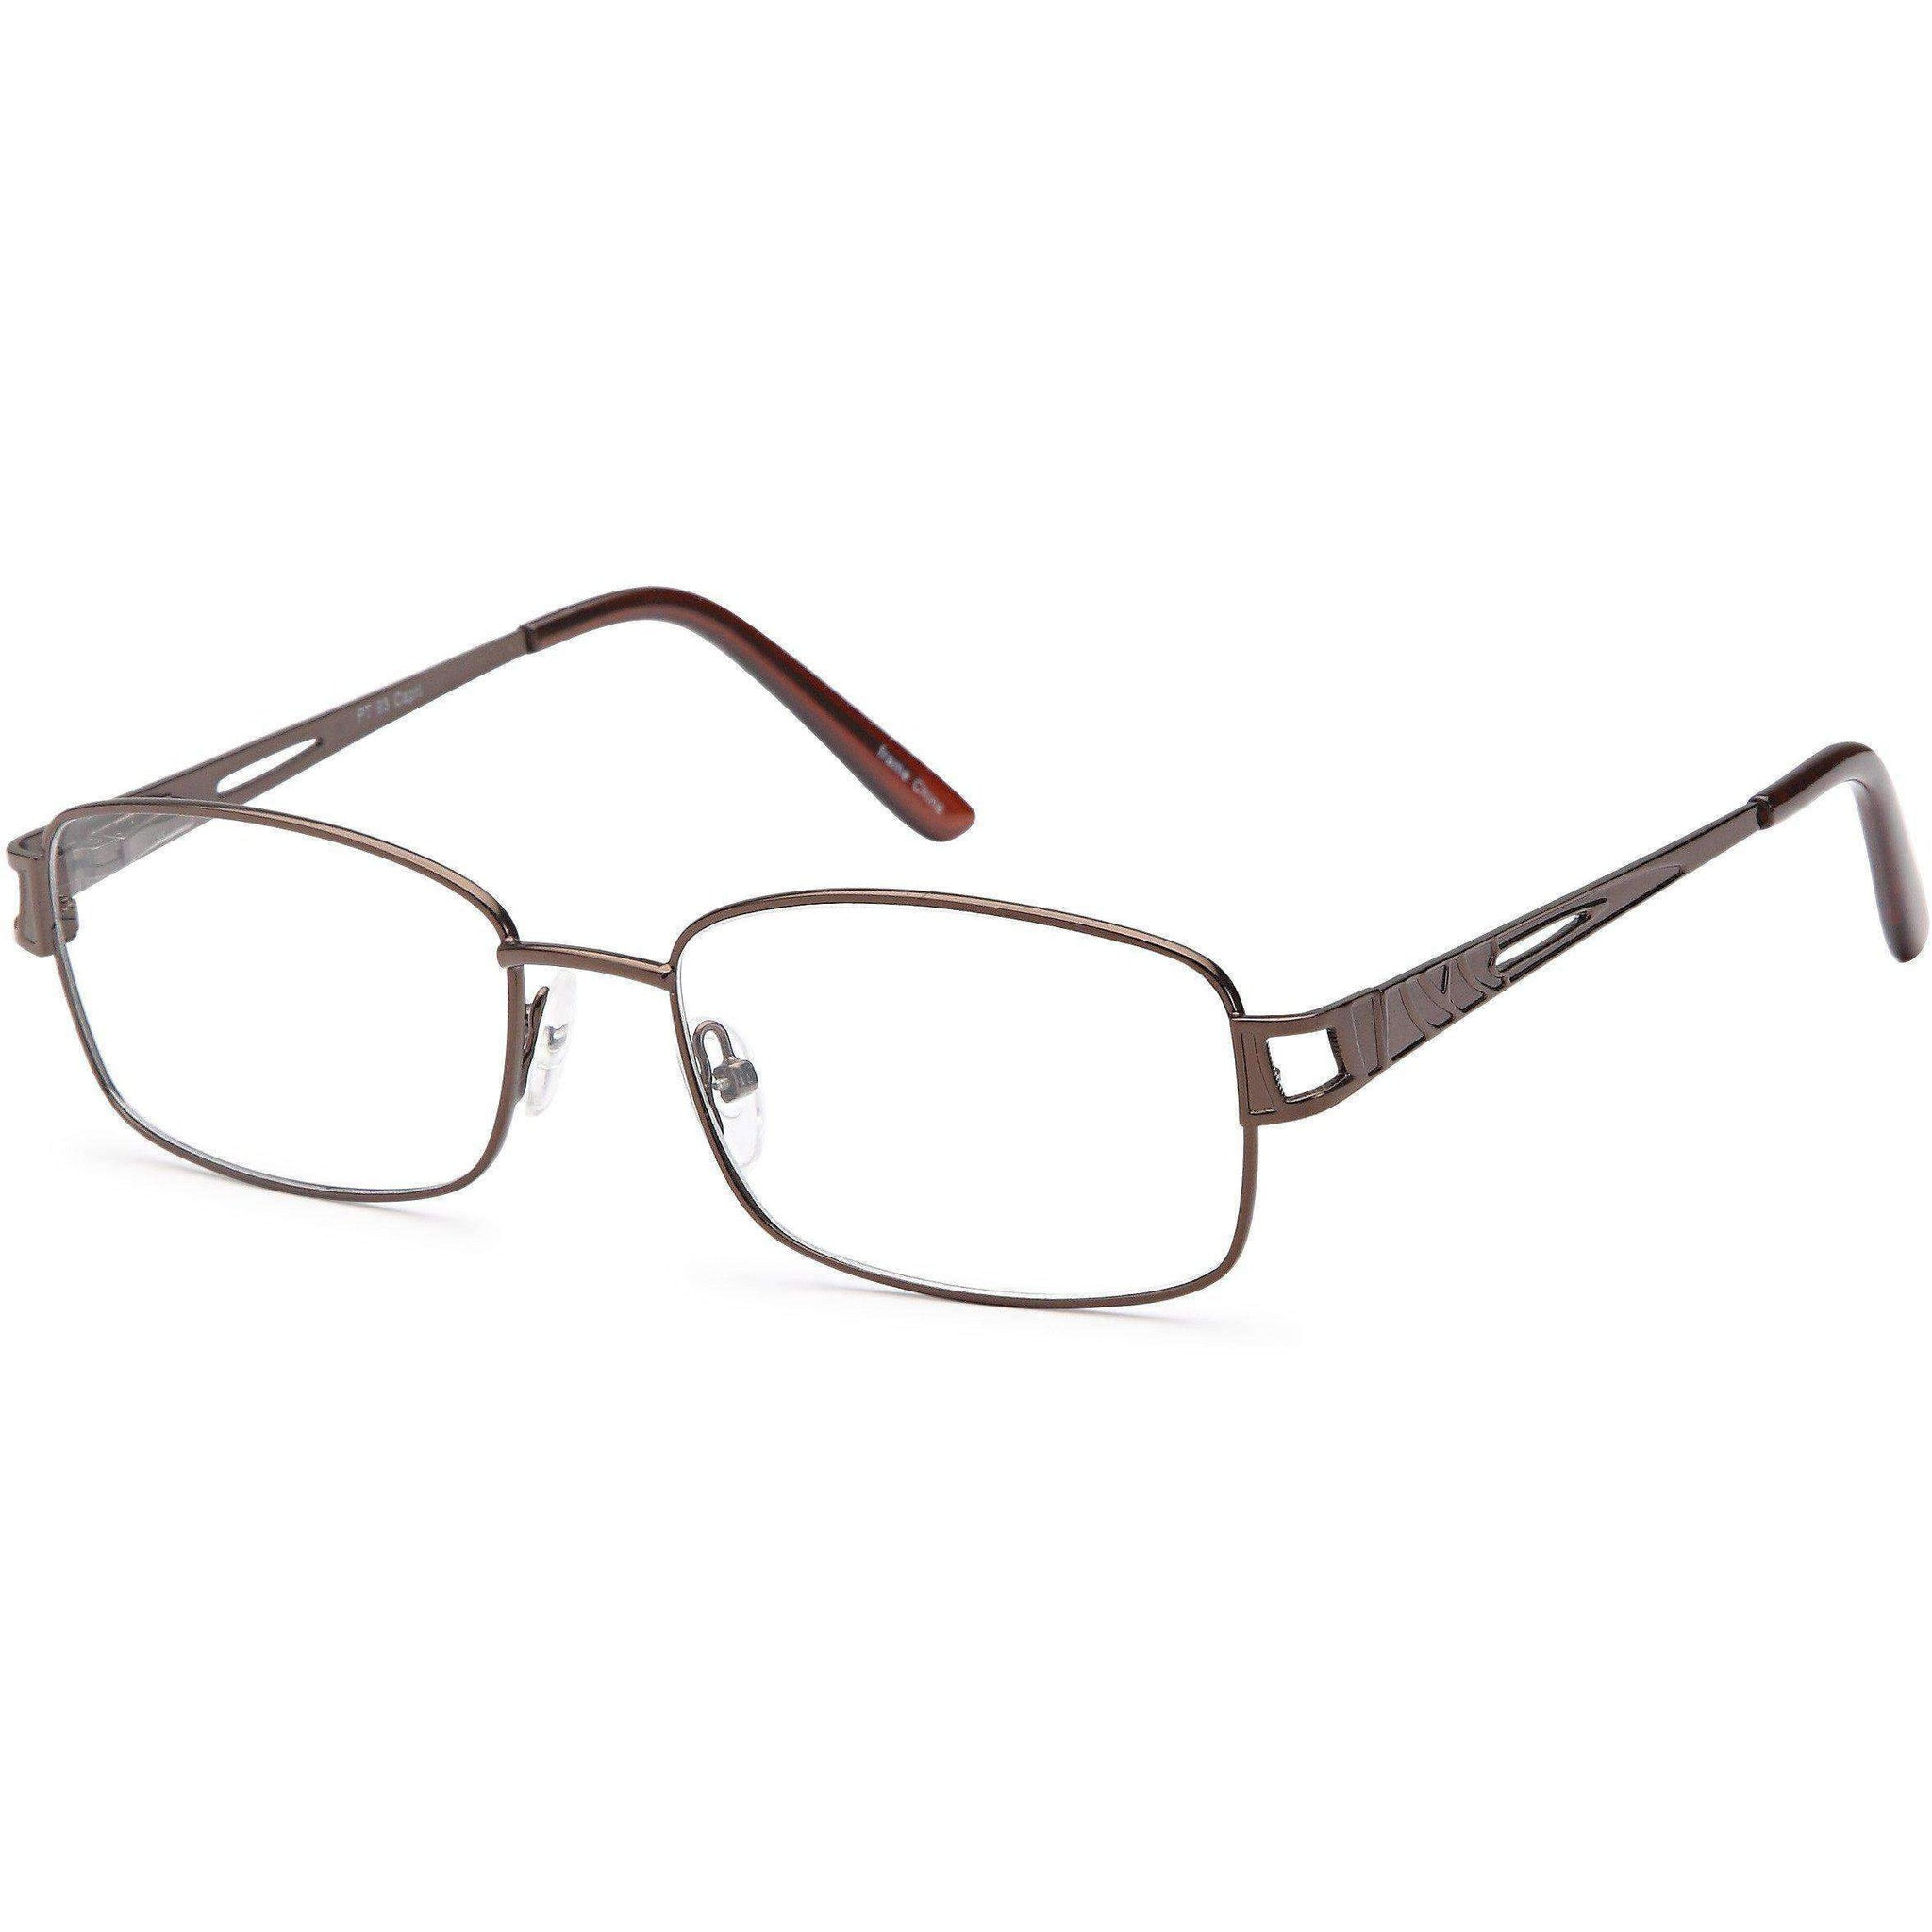 Appletree Prescription Glasses PT 92 Eyeglasses Frame